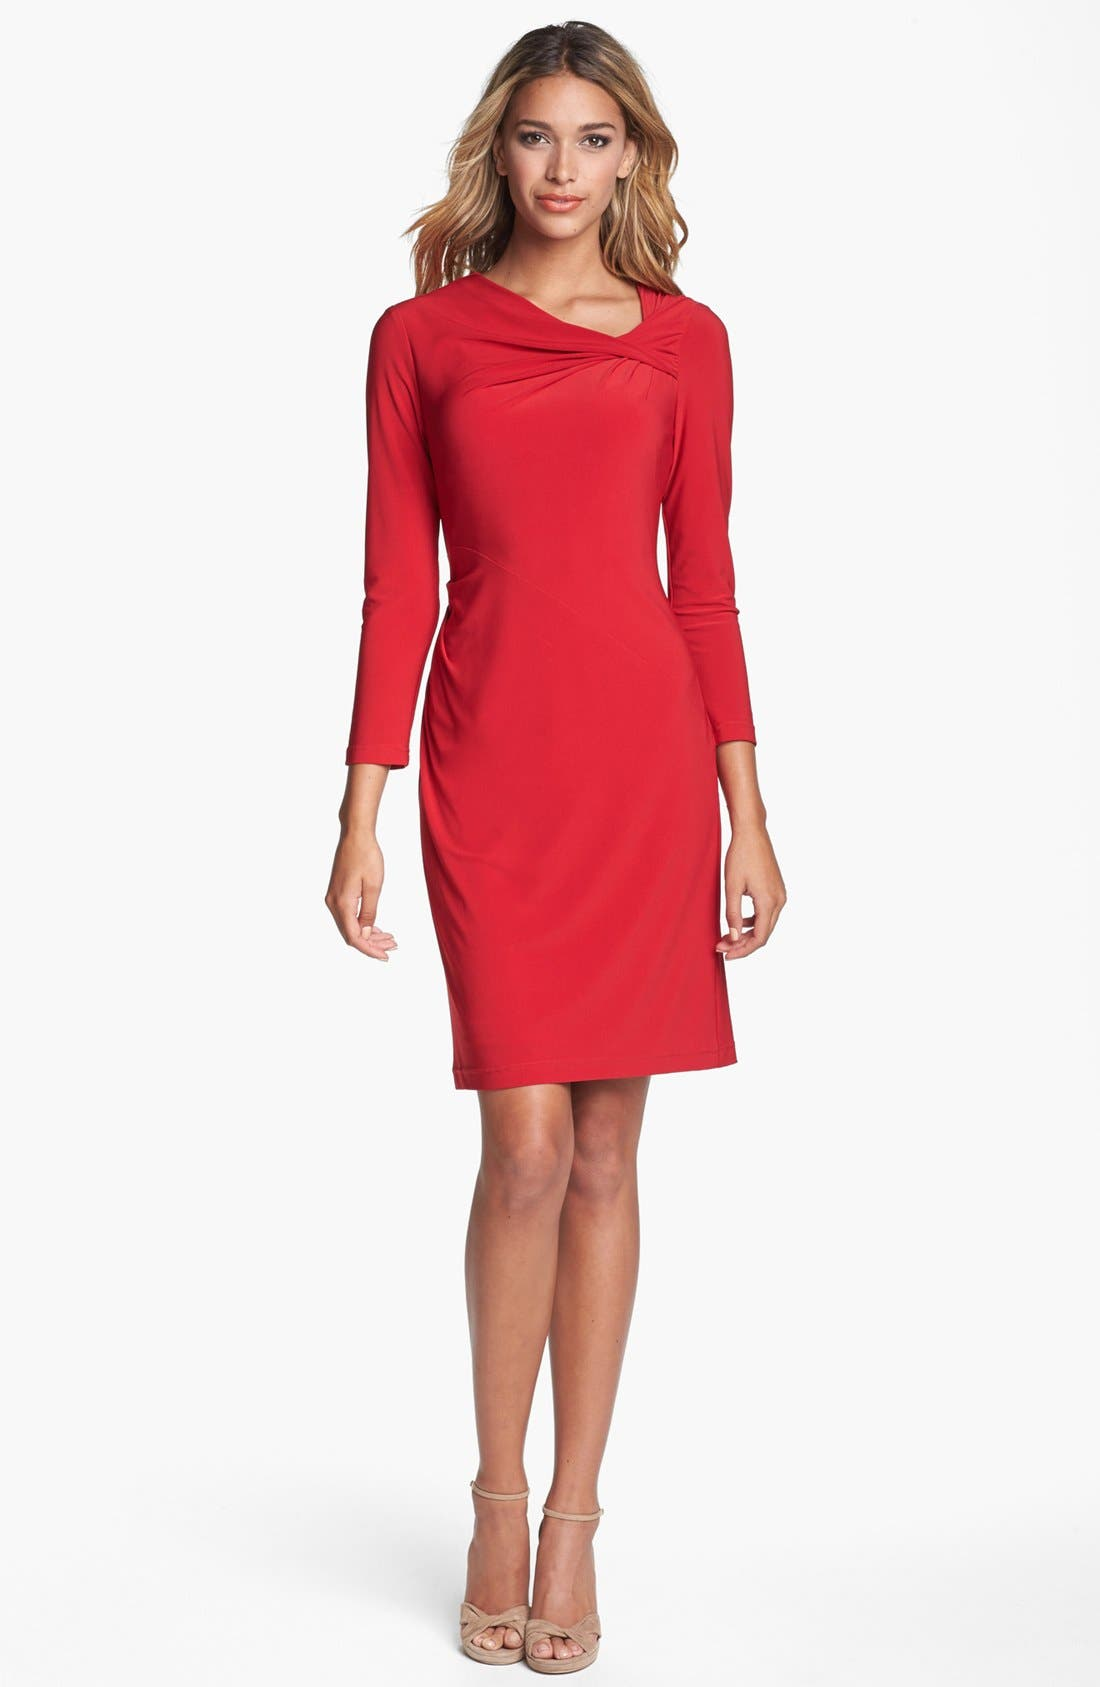 ADRIANNA PAPELL Front Twist Jersey Sheath Dress, Main, color, 602